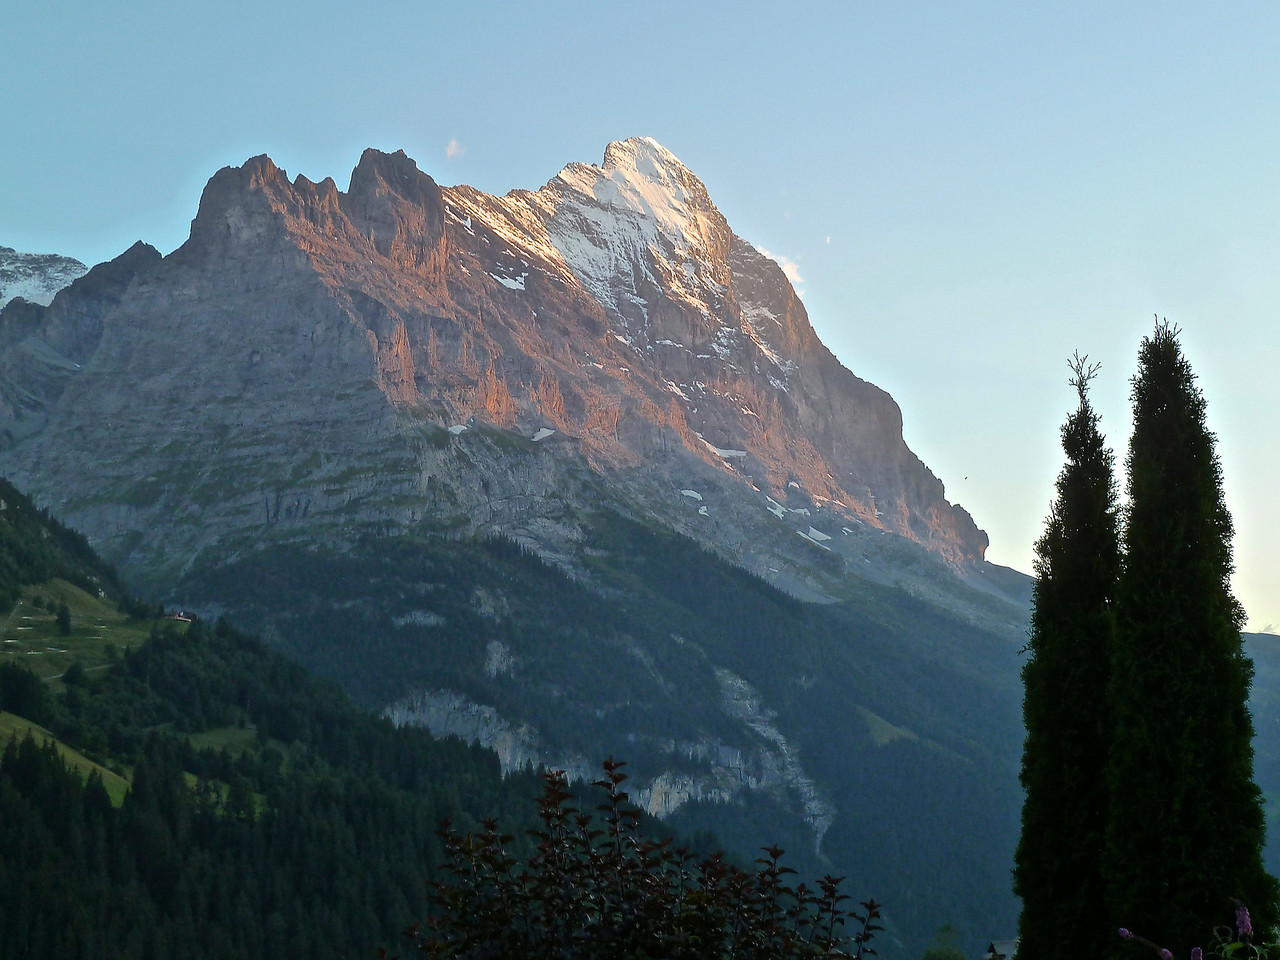 The Eiger North Face (far right) as seen from our apartment with Alpenglow!!